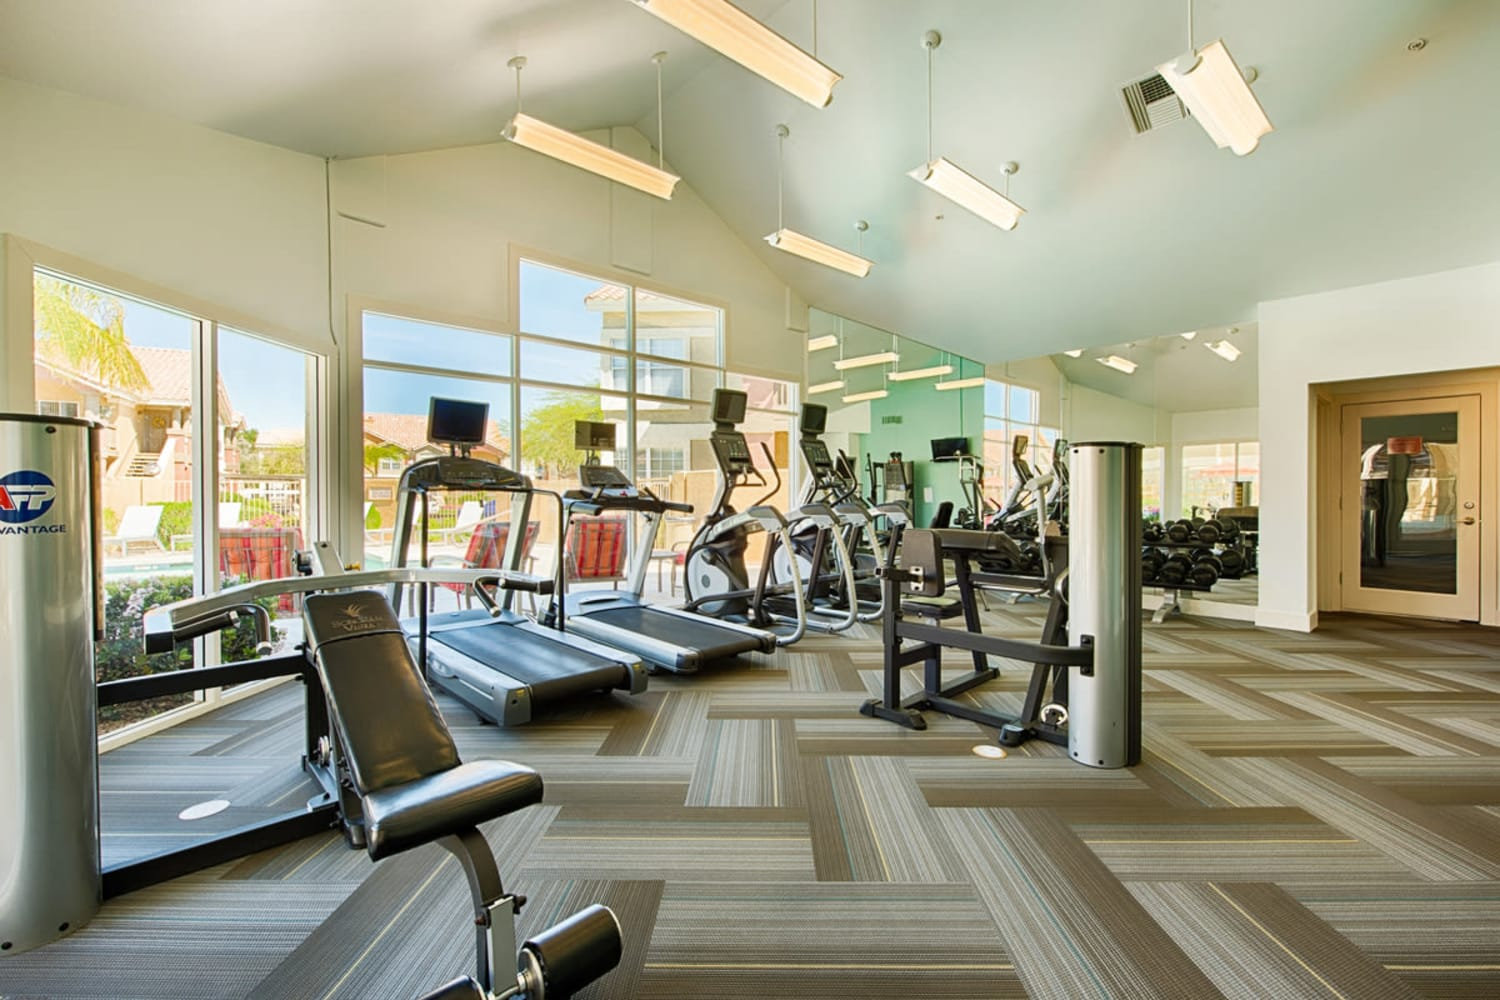 Enjoy access to fitness equipment at Sonoran Vista Apartments in Scottsdale, Arizona